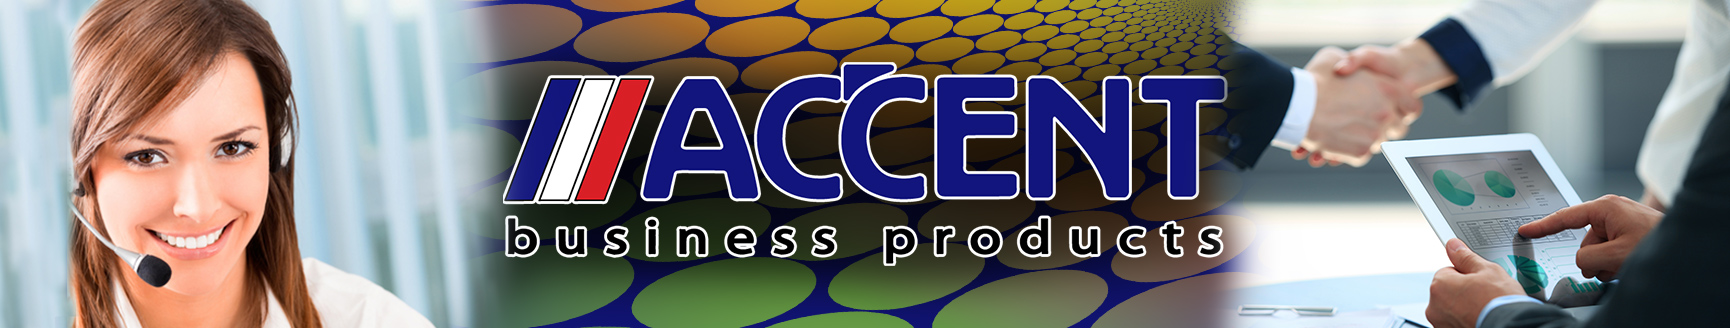 Accent Business Products Reviews